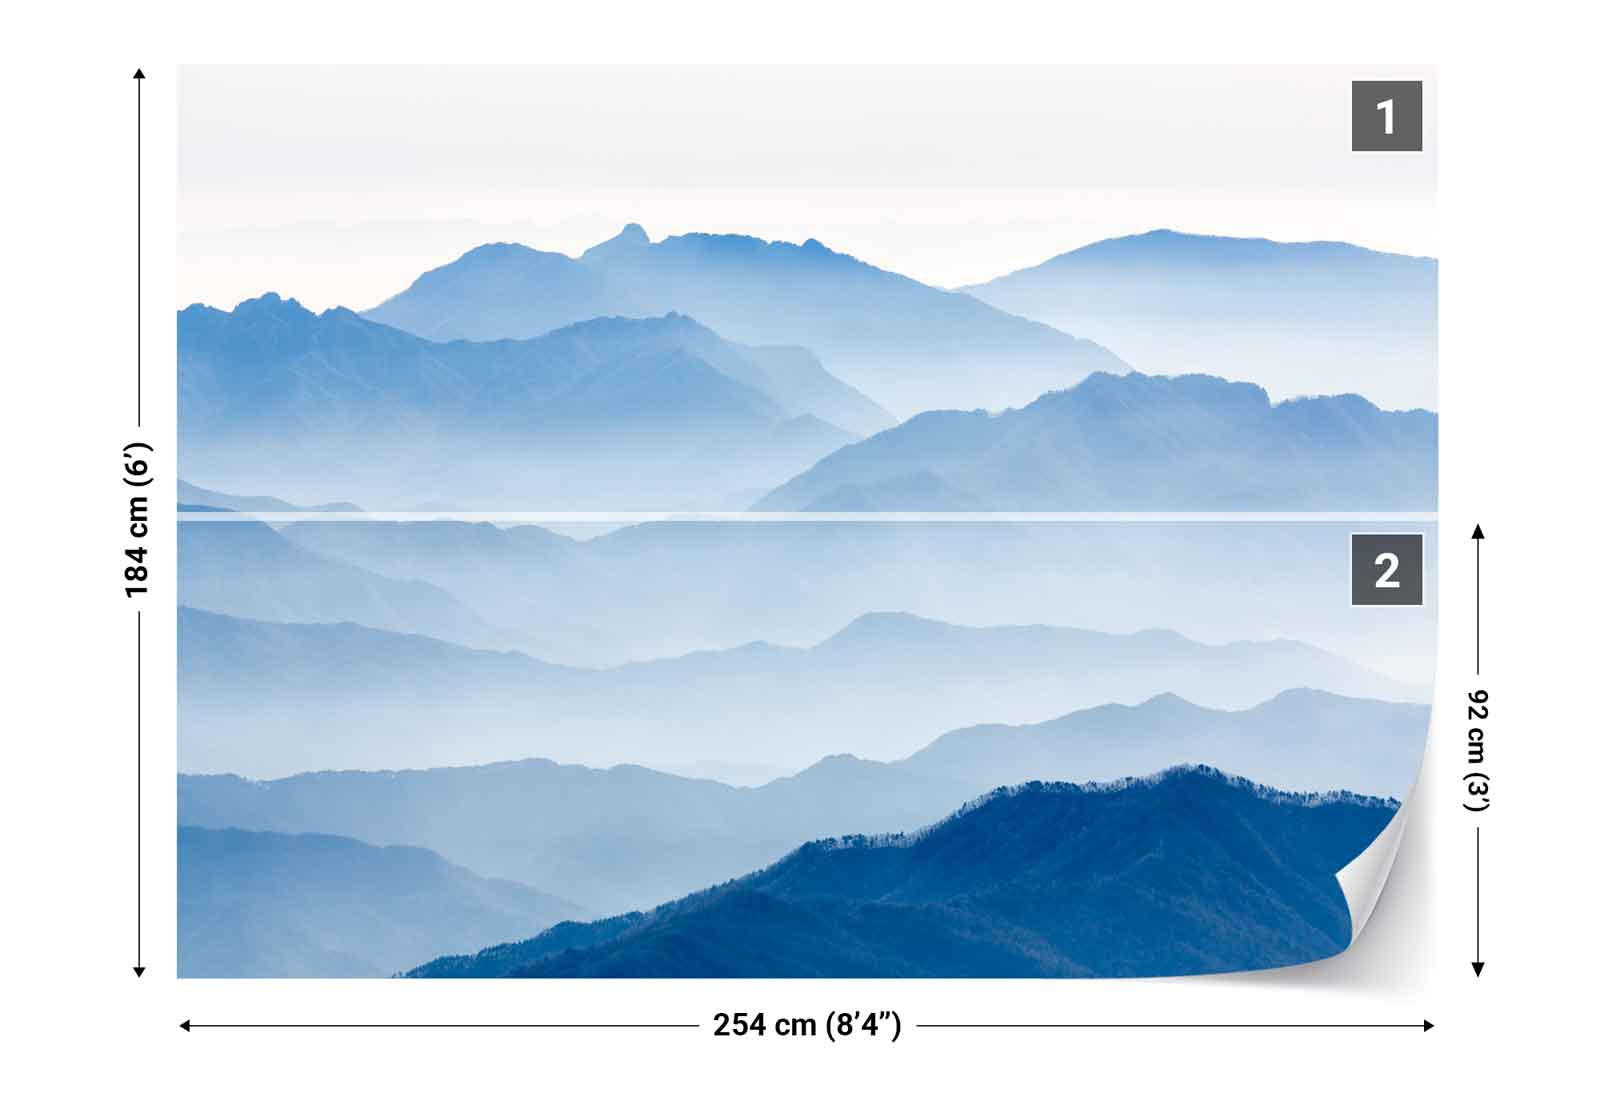 mountain range layers mist photo wallpaper wall mural 1x 1275628 ebay. Black Bedroom Furniture Sets. Home Design Ideas